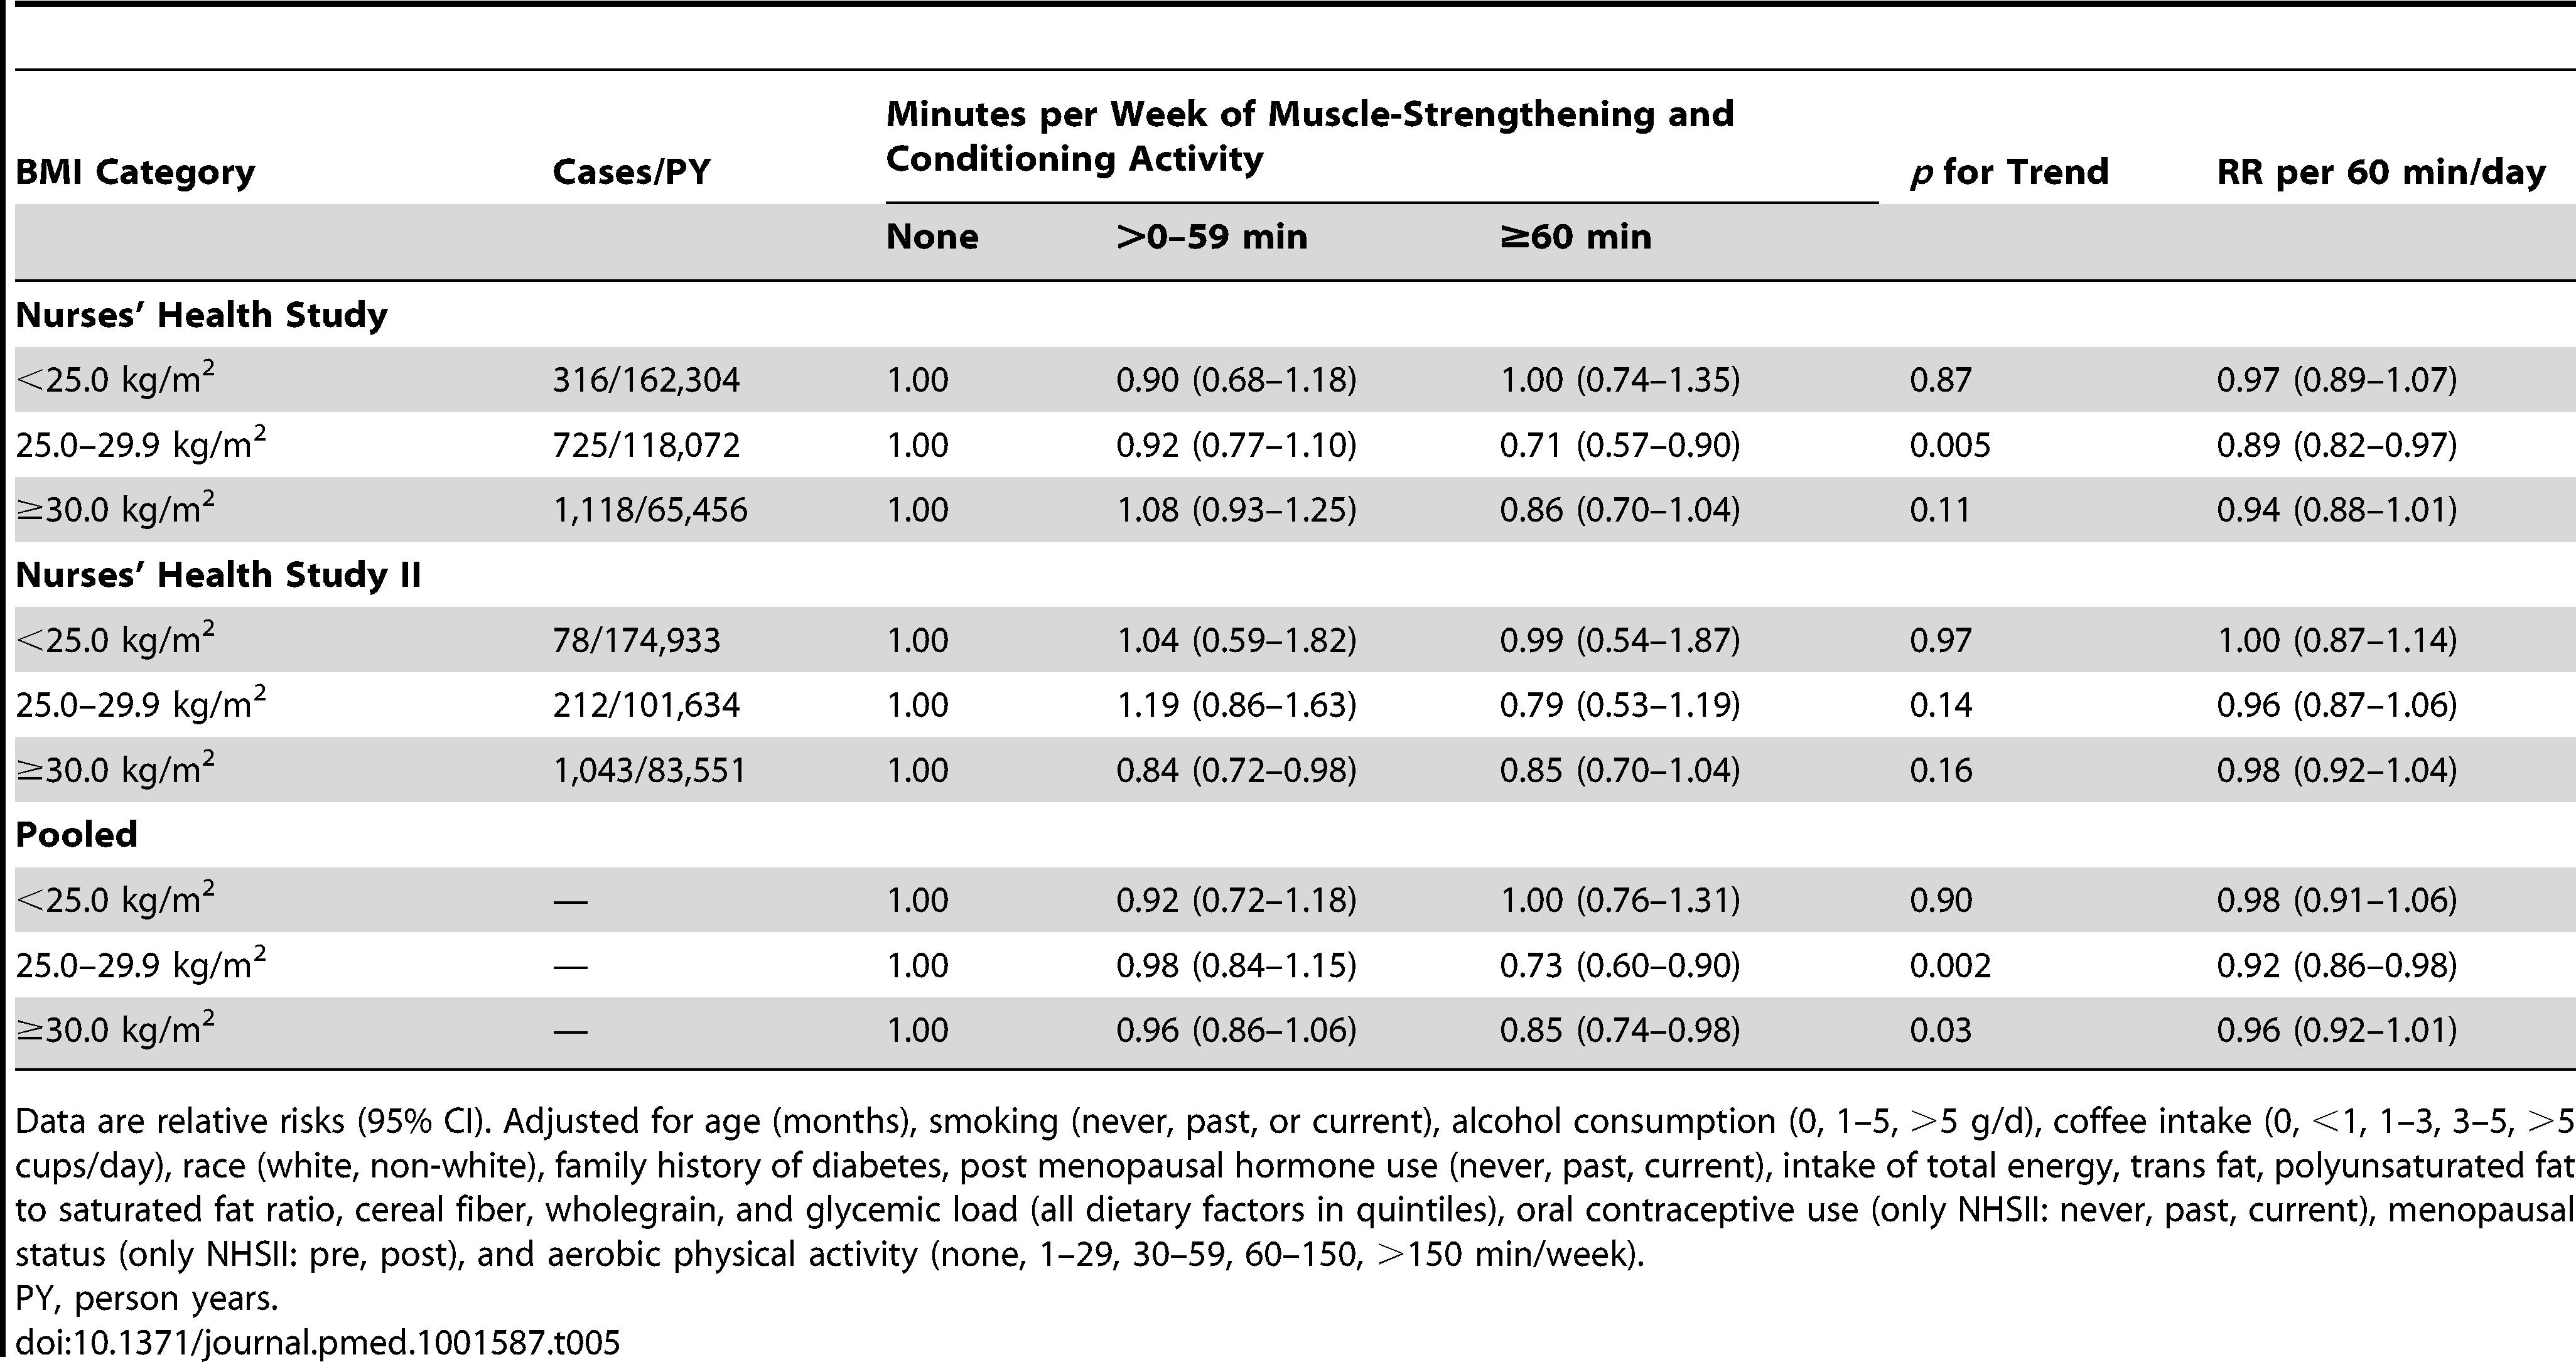 Total muscle-strengthening and conditioning activities and risk of type 2 diabetes stratified by body mass index (&lt;25, 25–&lt;30, ≥30 kg/m<sup>2</sup>).